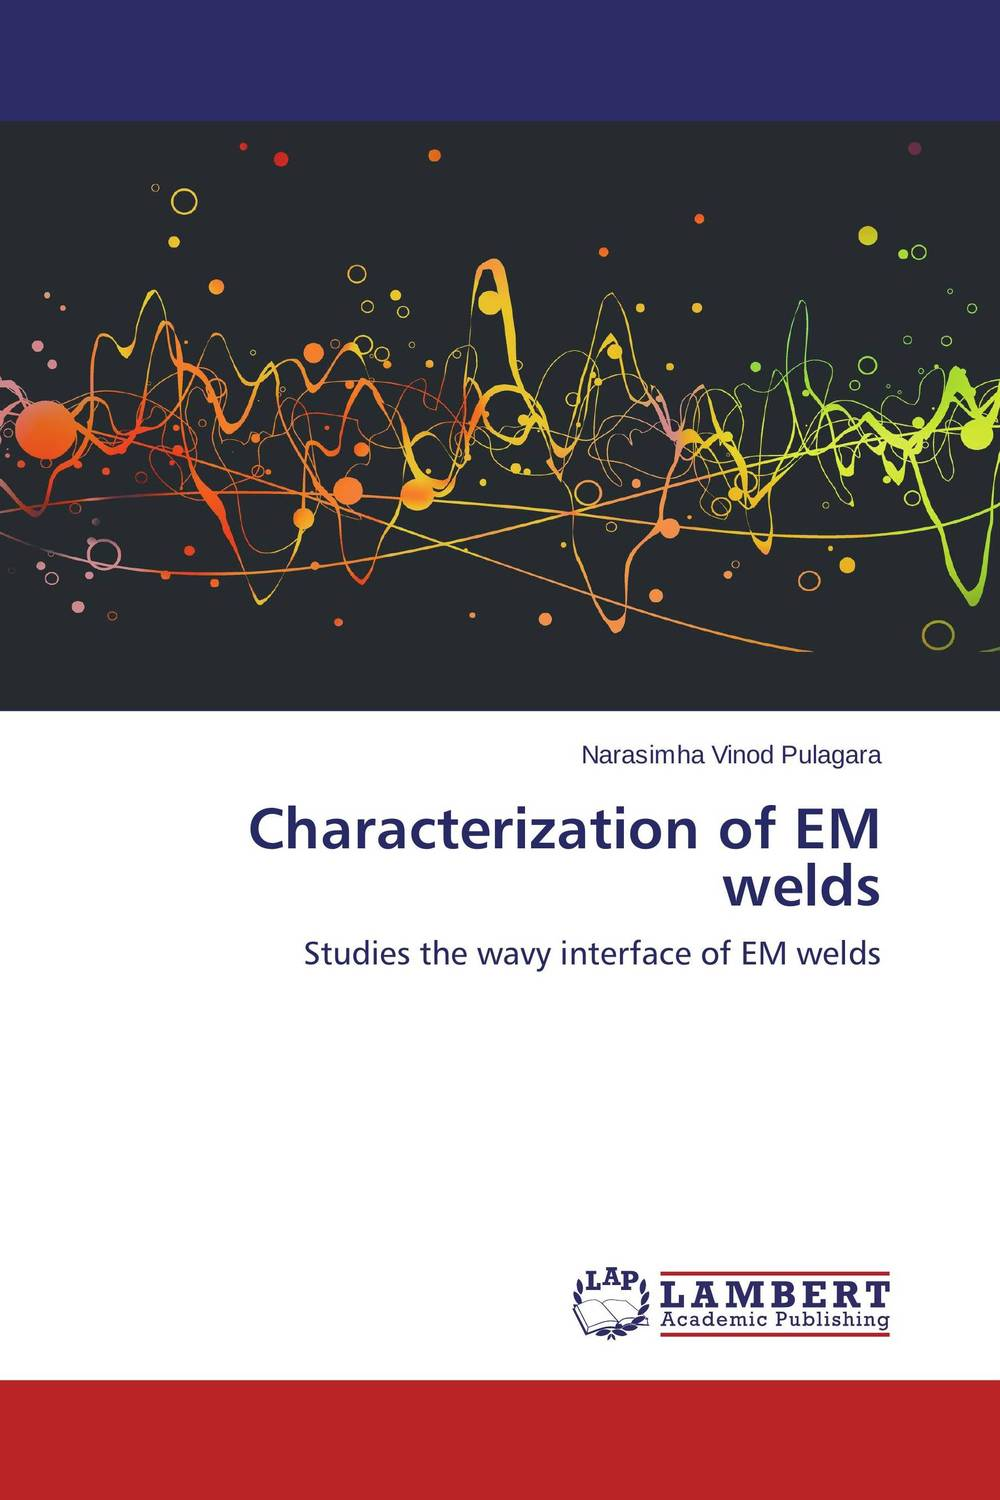 Characterization of EM welds purnima sareen sundeep kumar and rakesh singh molecular and pathological characterization of slow rusting in wheat